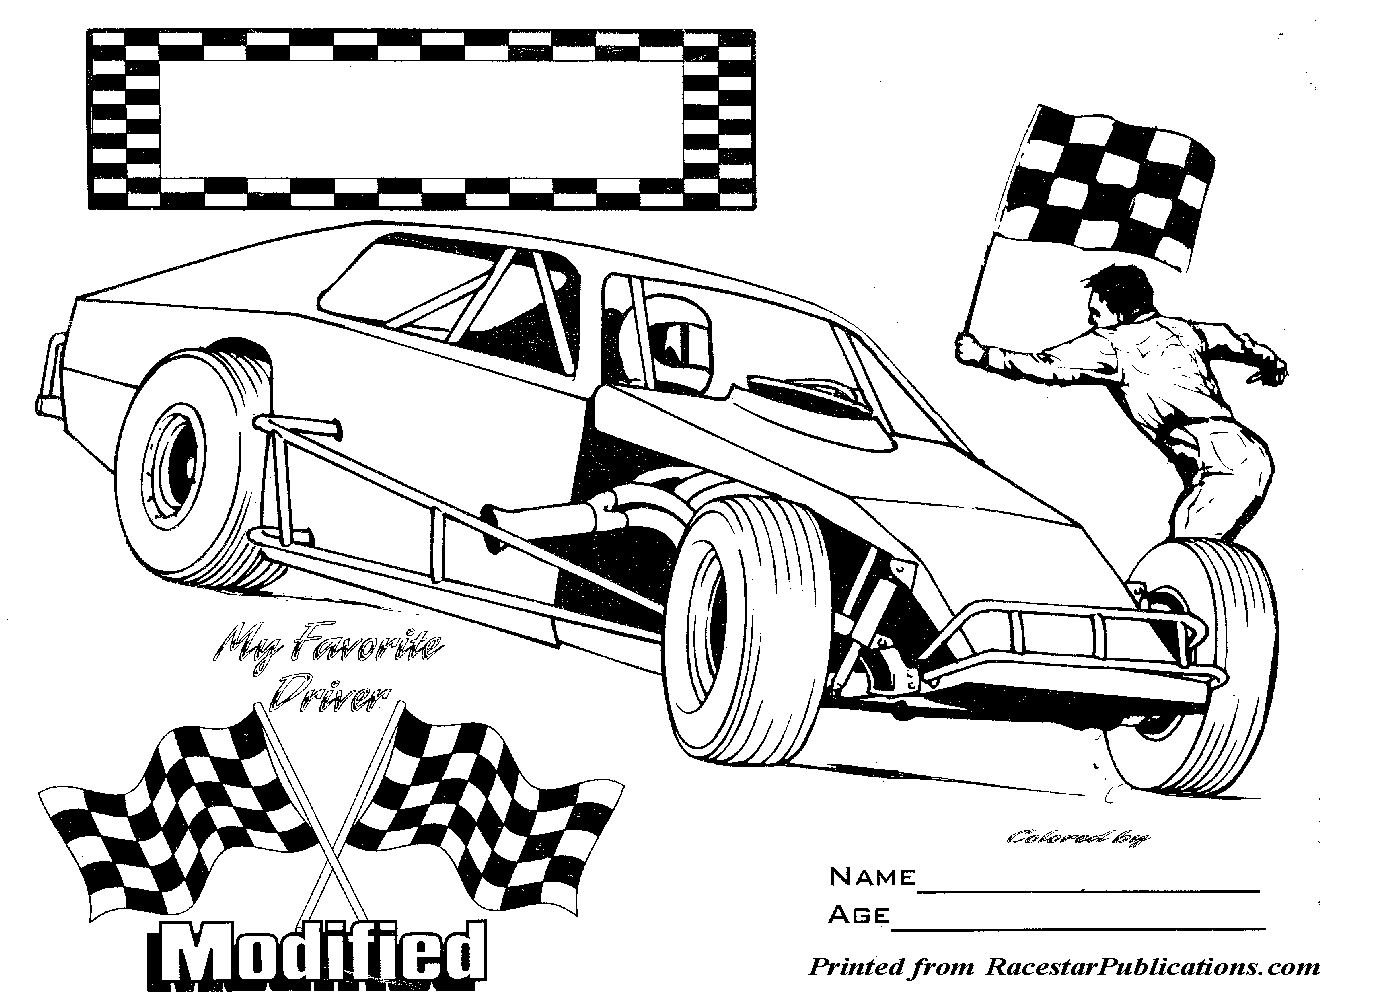 1280689 additionally Free Cars 3 Printable Coloring Pages Activity Sheets furthermore Chevy Monte Carlo Coloring Pages together with Coloring Suite Pages 5041 besides How To Draw Lamborghini Centenario Side View. on modified race car